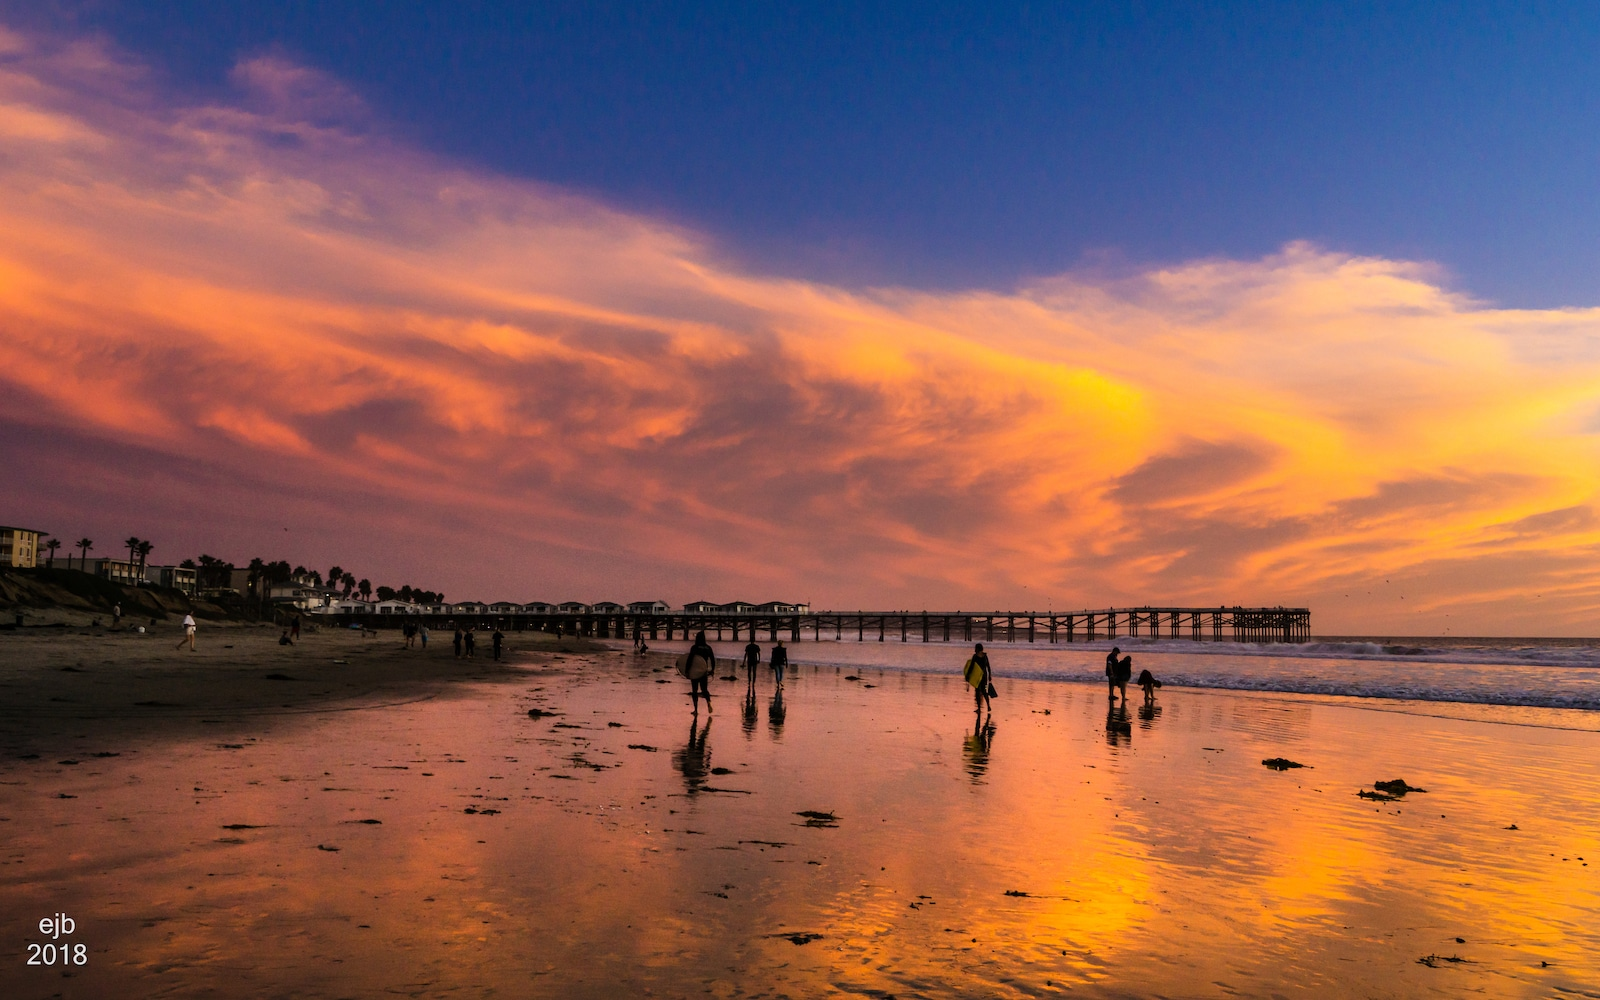 Image of Pacific Beach in San Diego at sunset